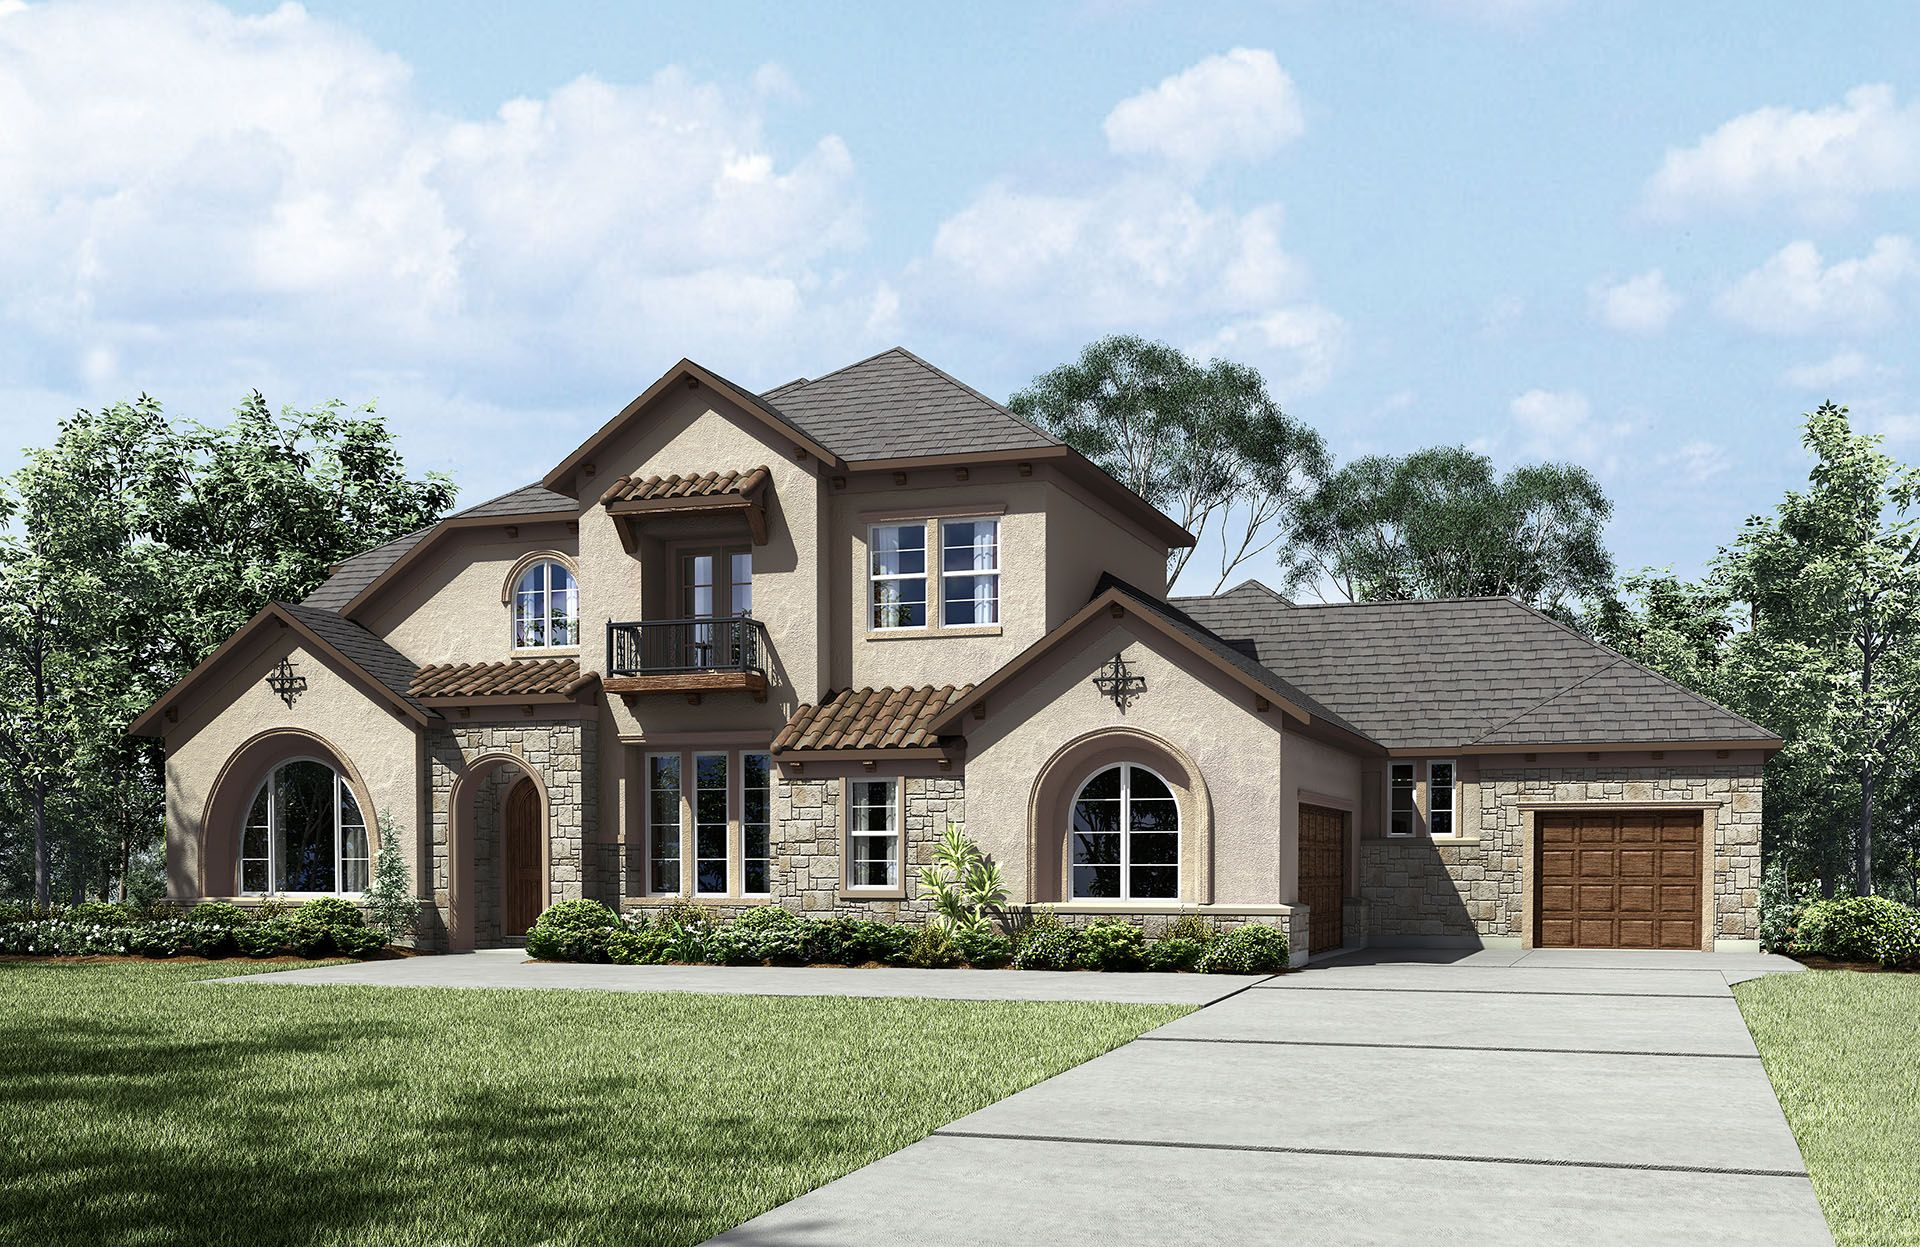 Single Family for Sale at Cimarron Hills - Colinas Ii 307 Flint Ridge Trail Georgetown, Texas 78628 United States